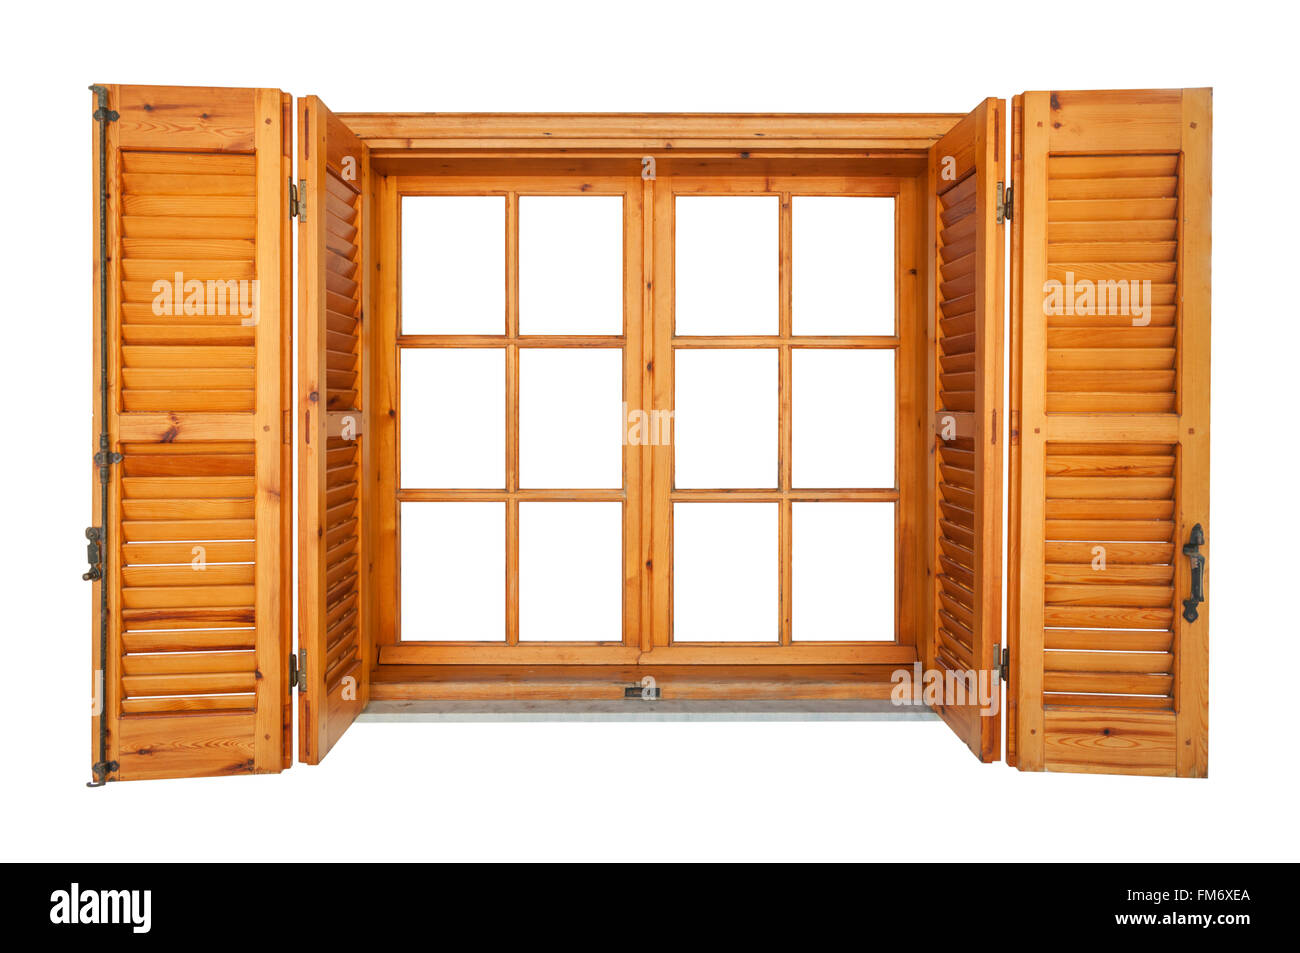 Weathered window shutters stock photos weathered window shutters wooden window with shutters isolated on white exterior side stock image sisterspd